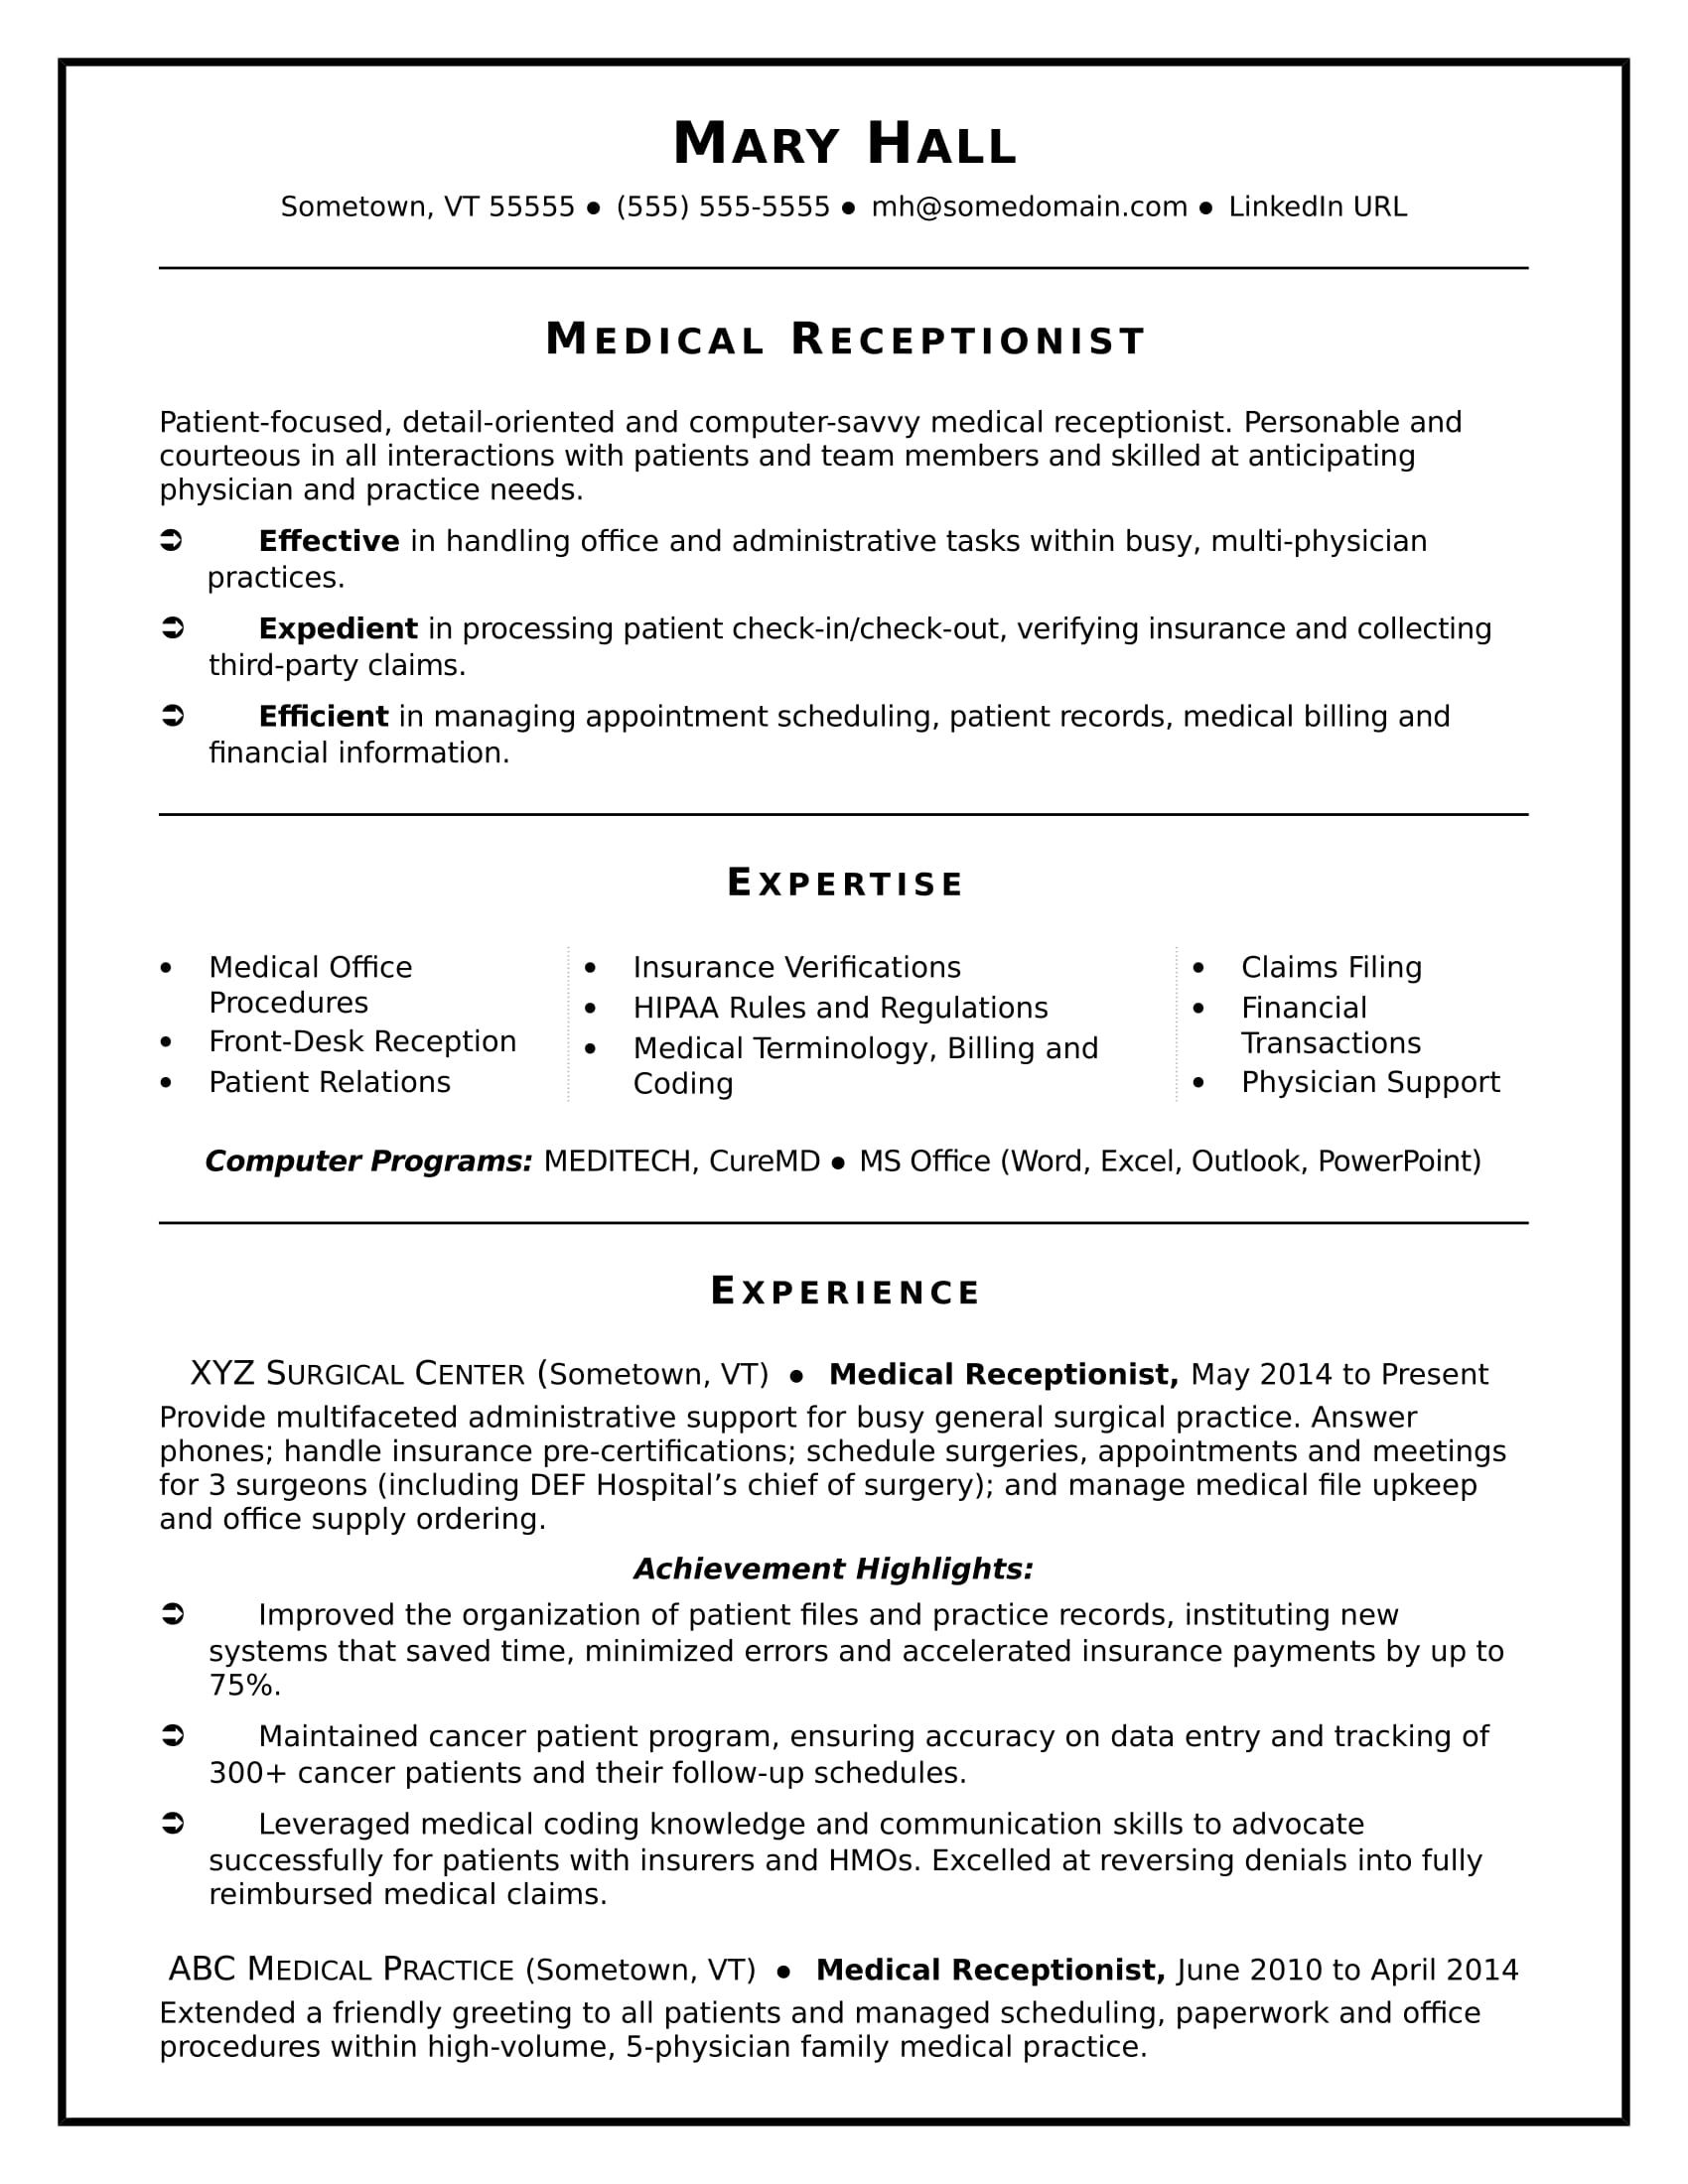 Medical Receptionist Resume Sample  Medical Receptionist And